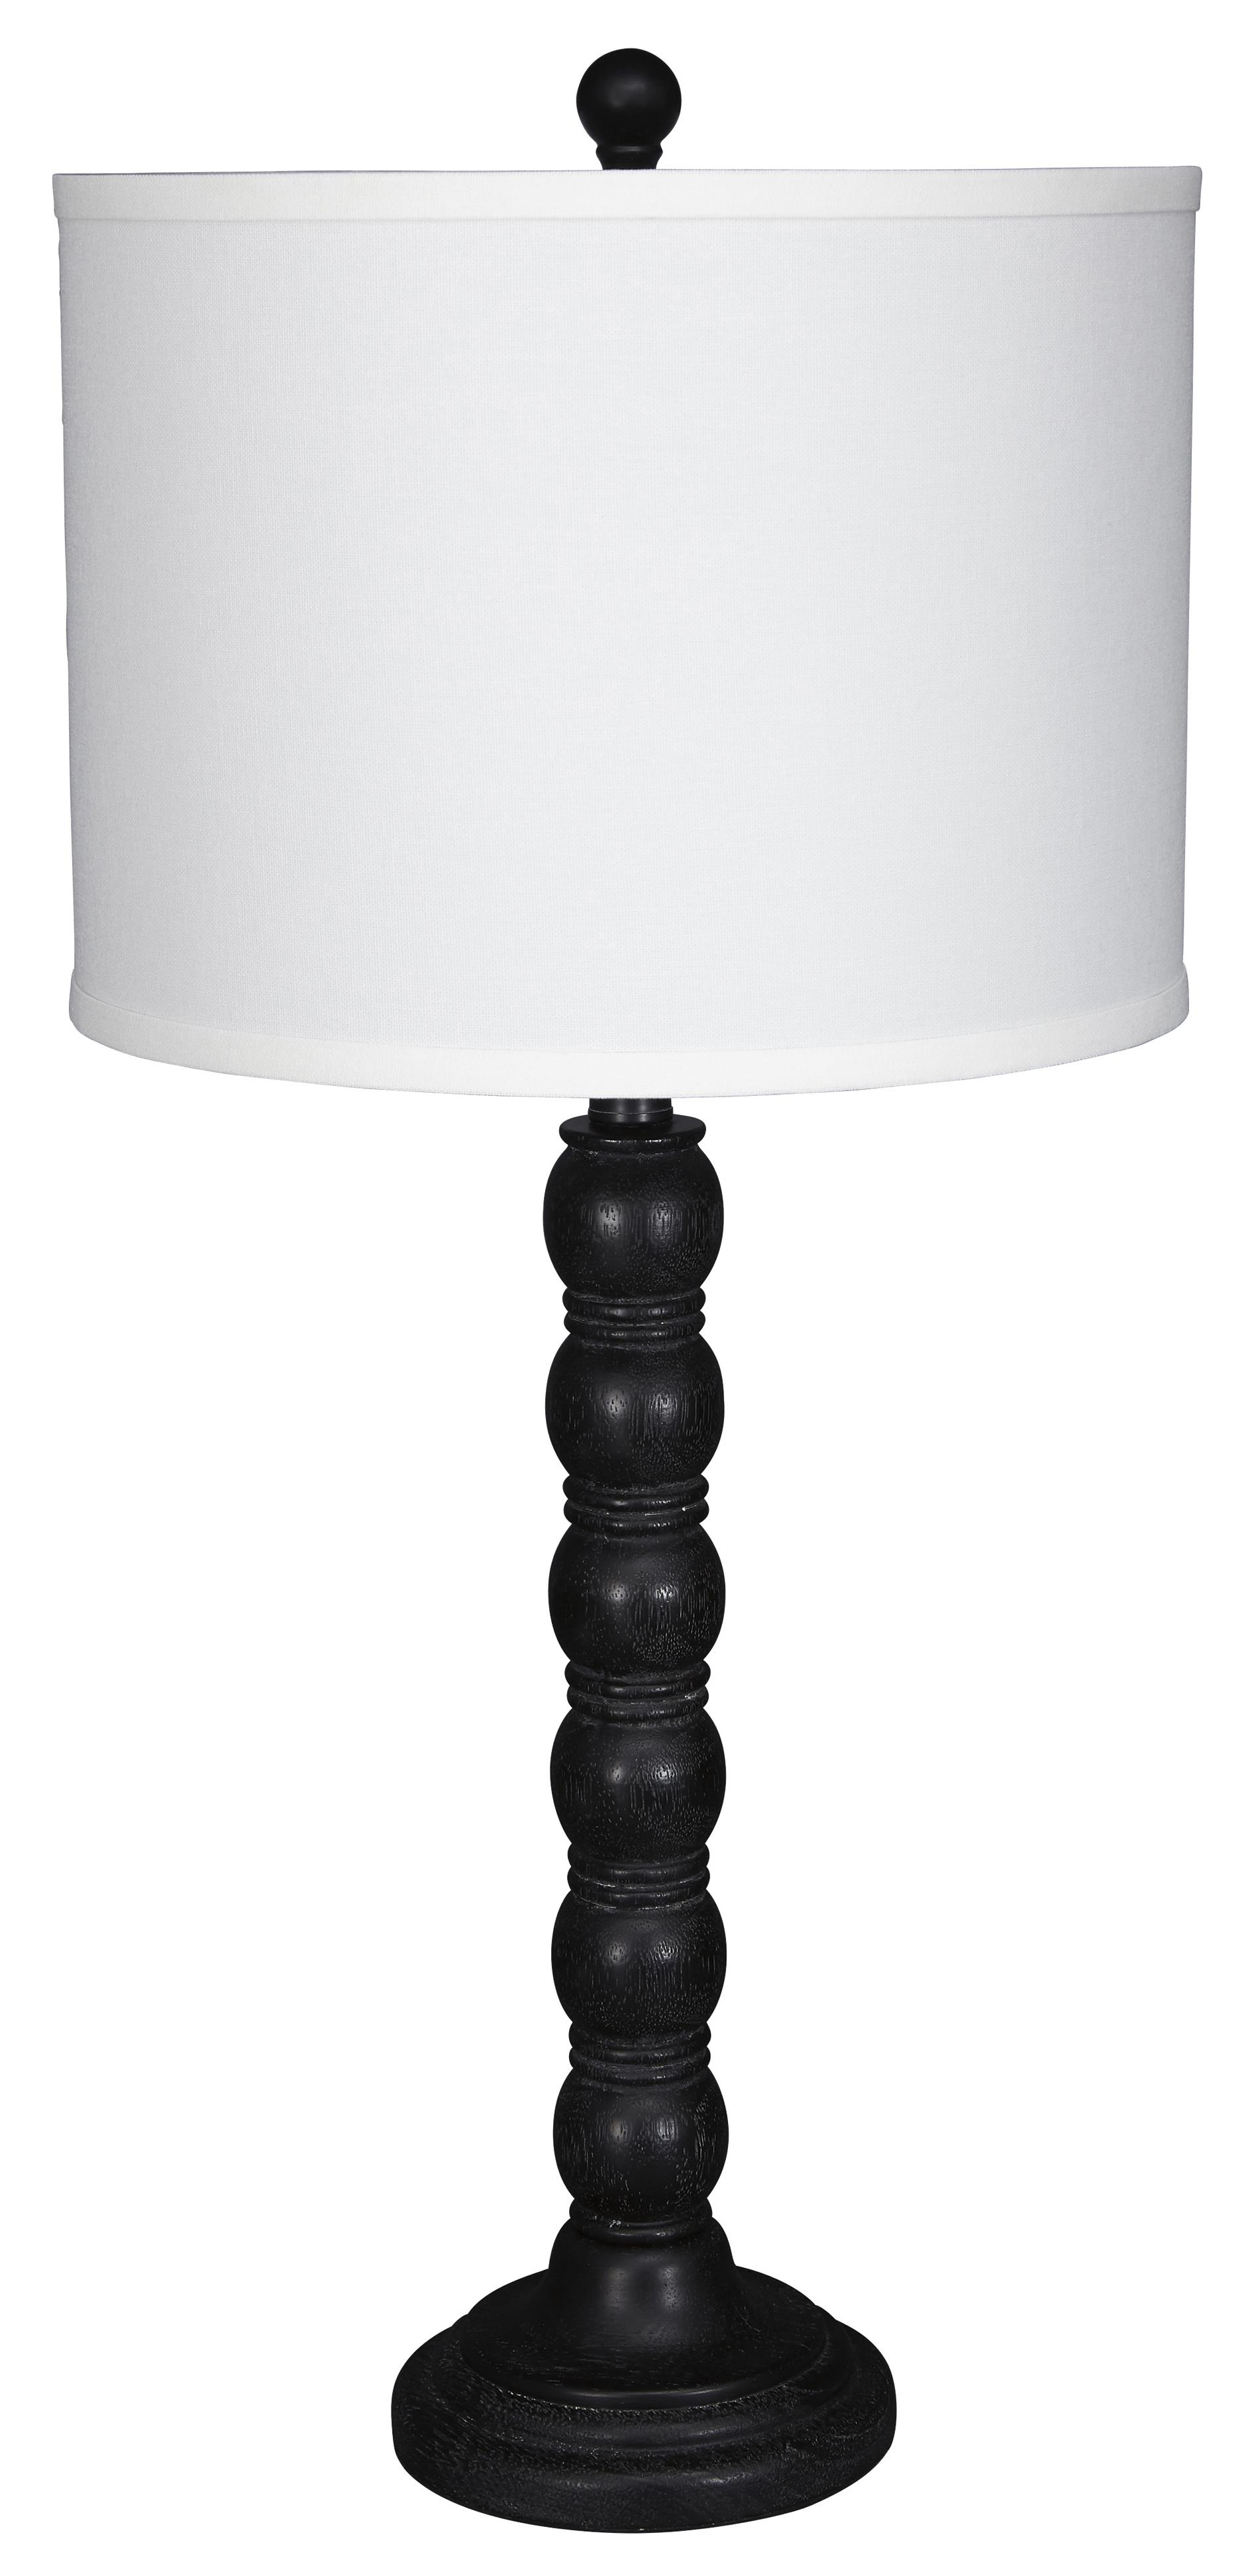 Signature Design by Ashley Lamps - Traditional Classics Set of 2 Shellany Table Lamps - Item Number: L276004